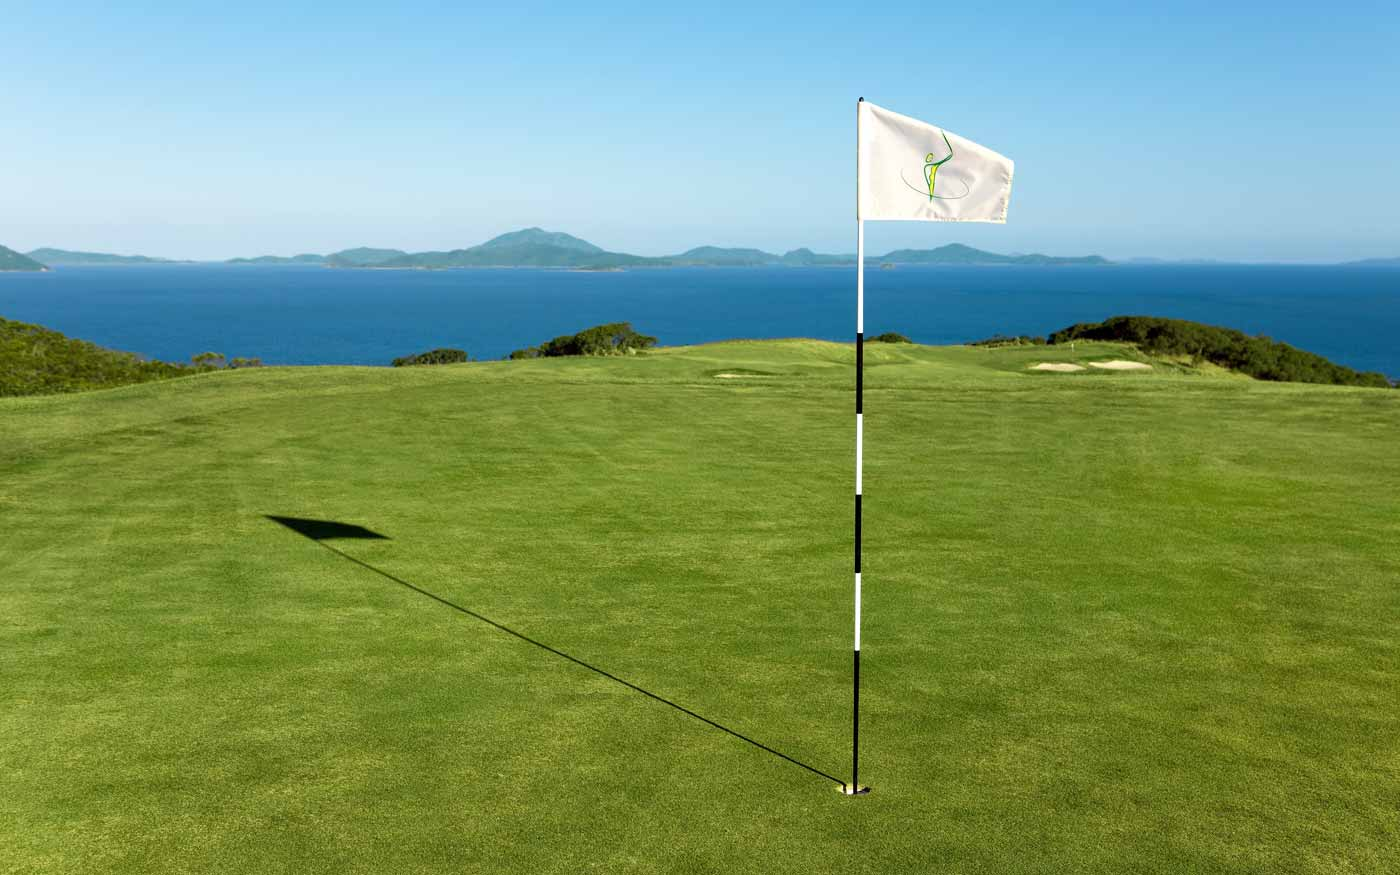 Golf Course Green 3454 Hd Wallpapers in Sports   Imagescicom 1400x875